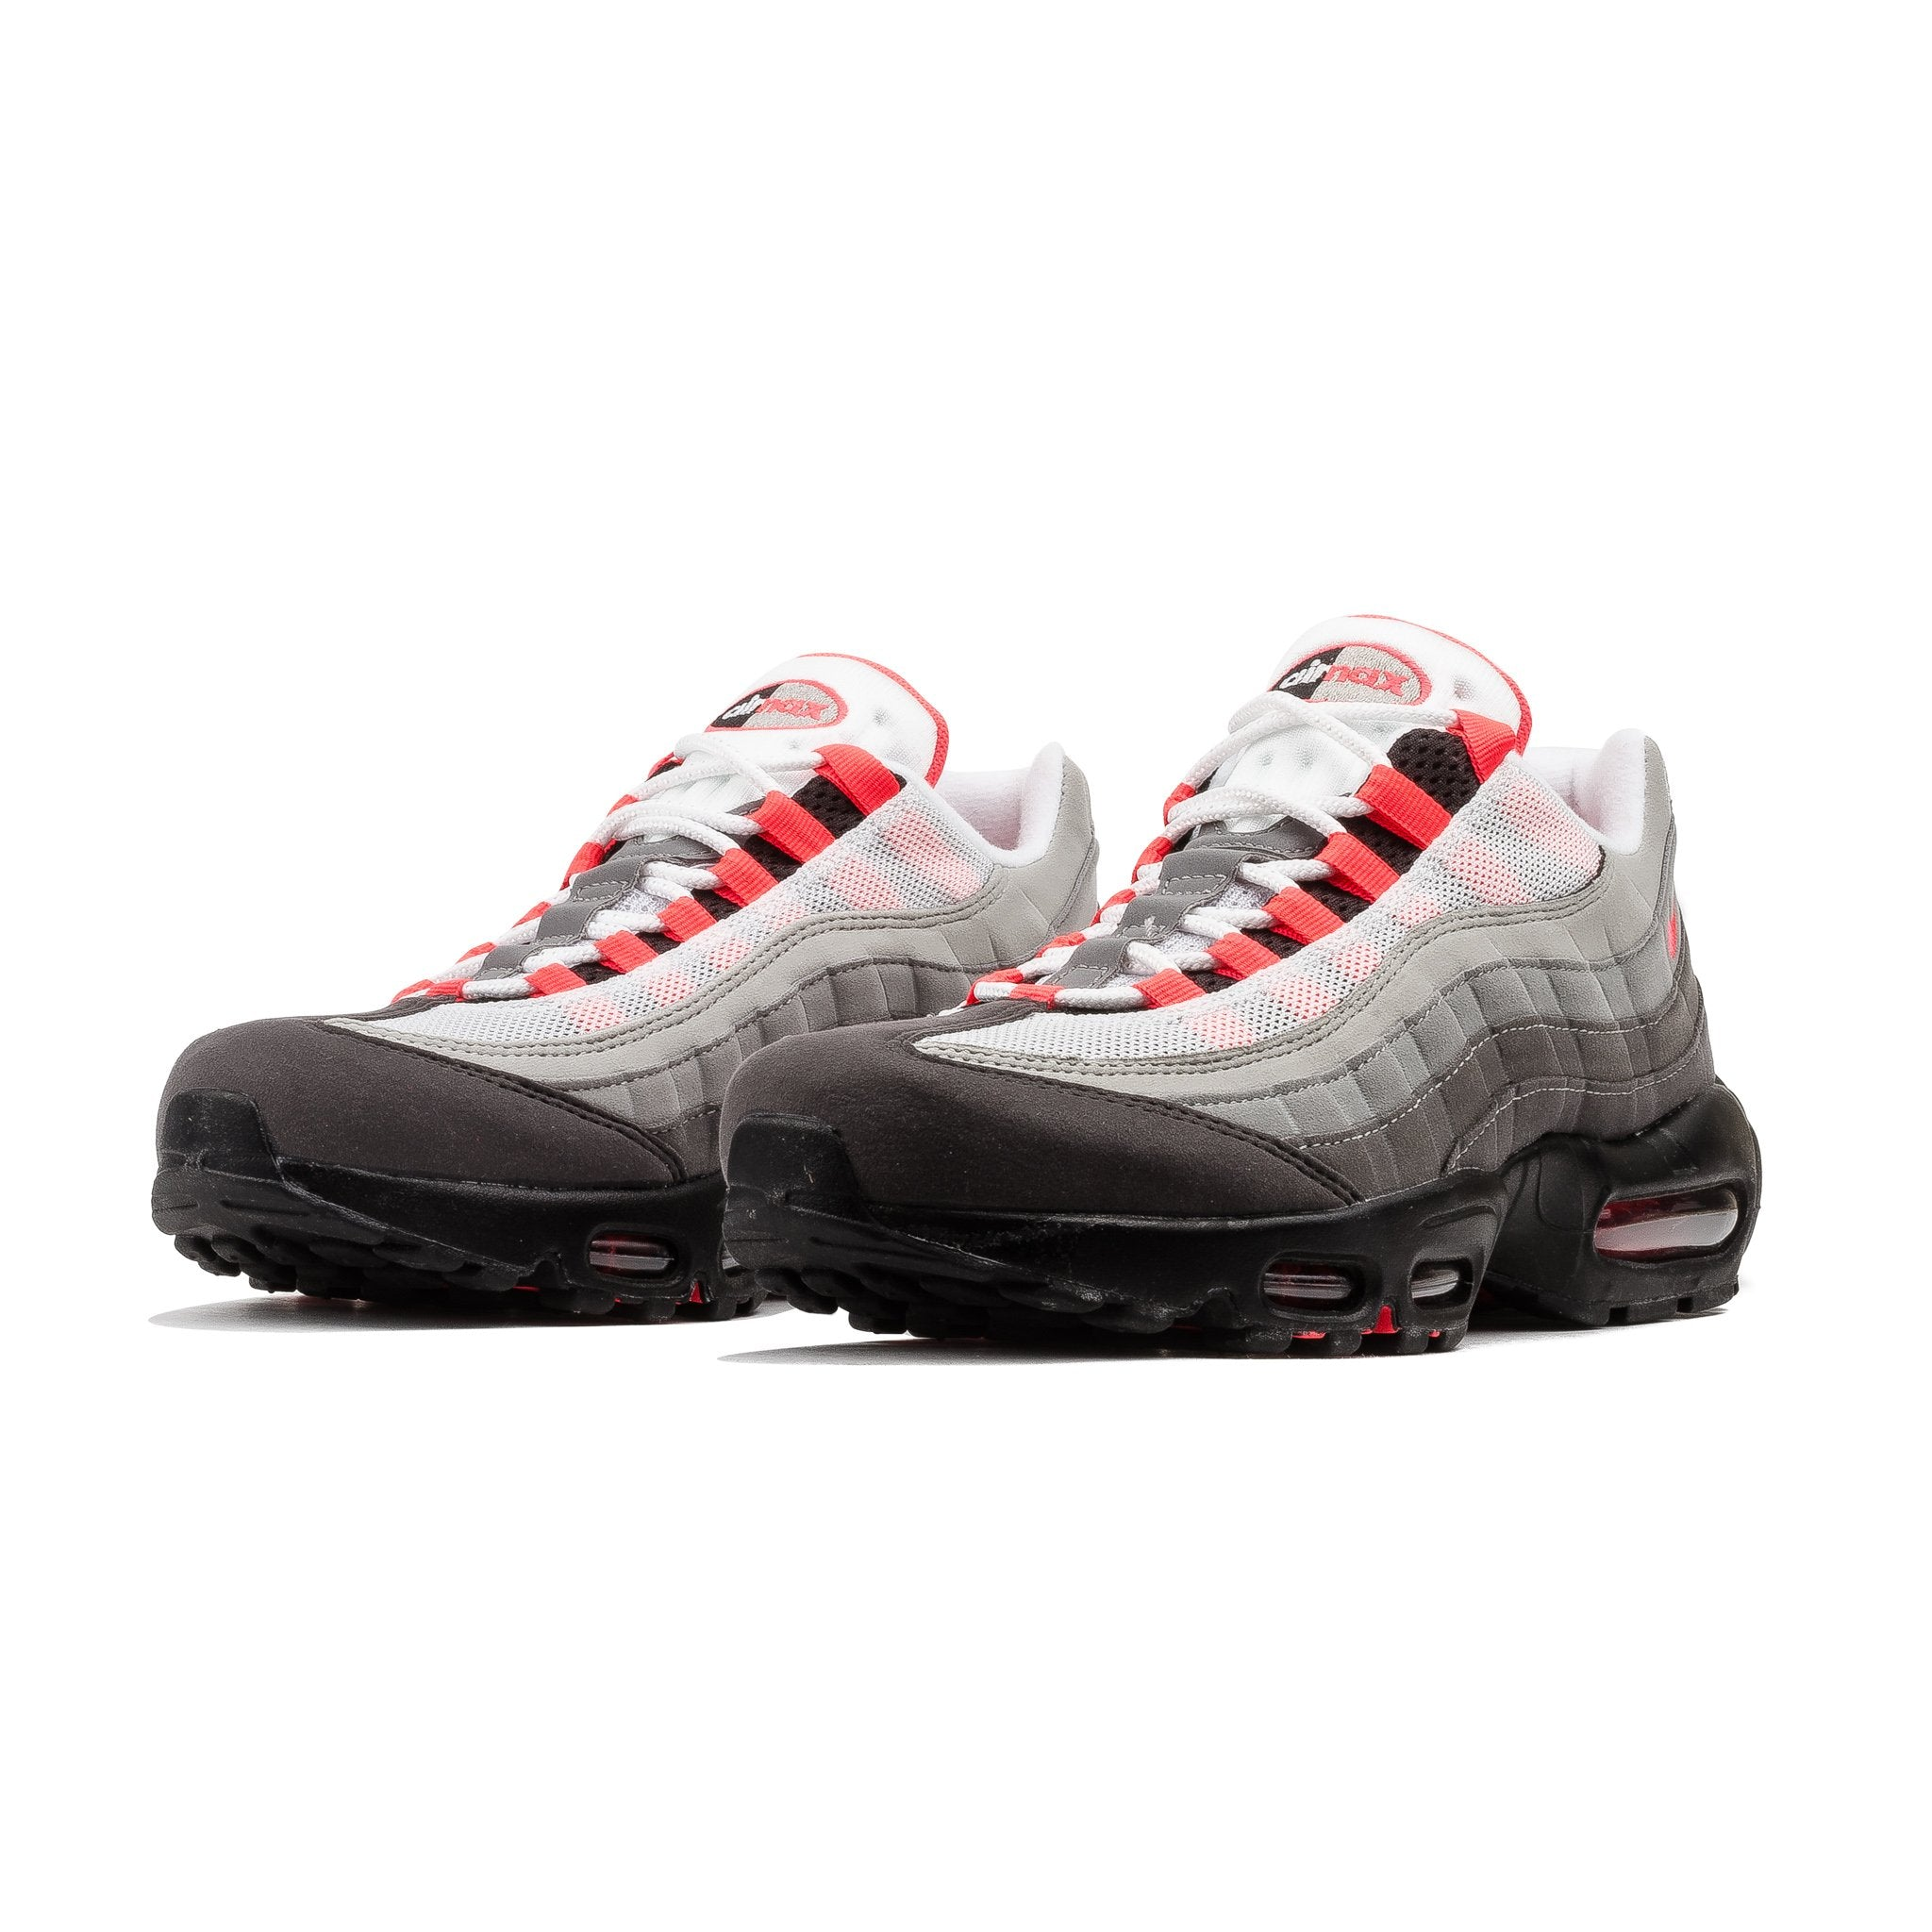 nike air max 95 og trainer white / solar red / granite